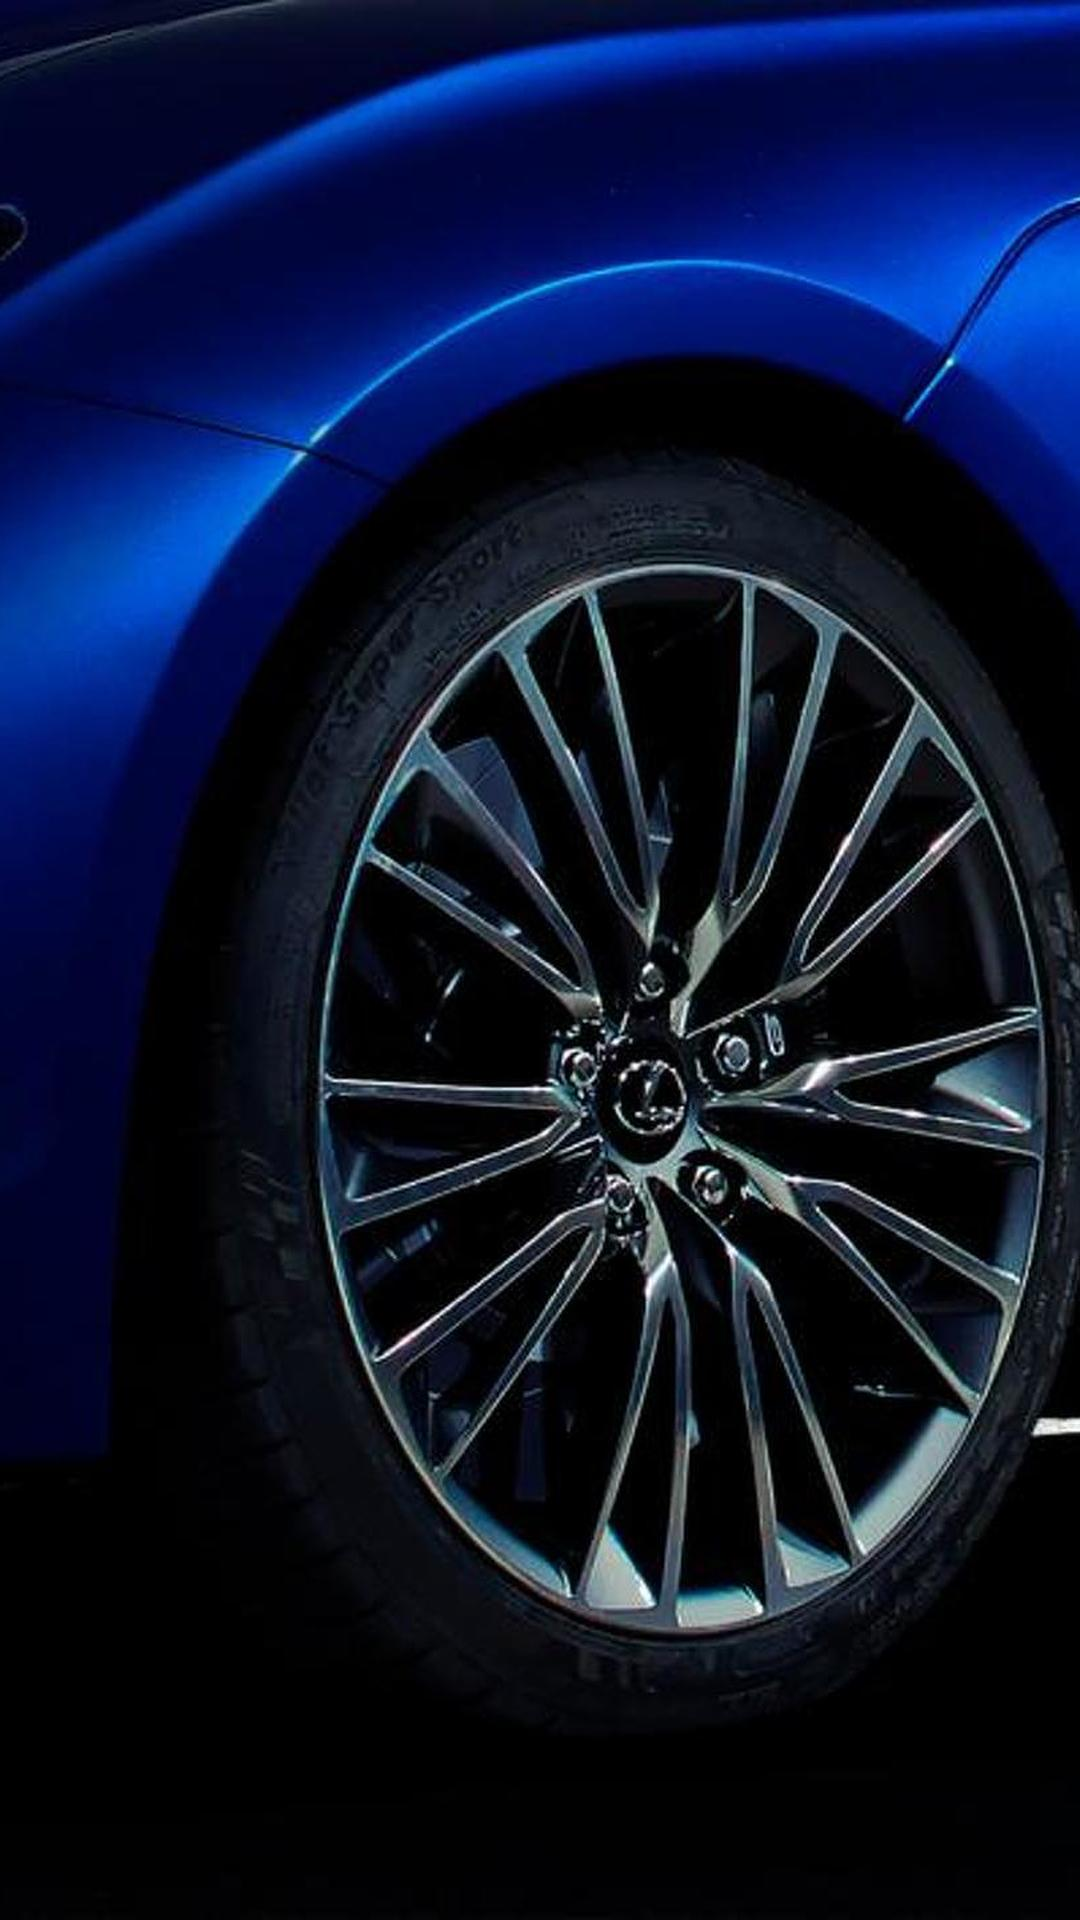 Lexus teases an all-new F model for Detroit, could be the RC F